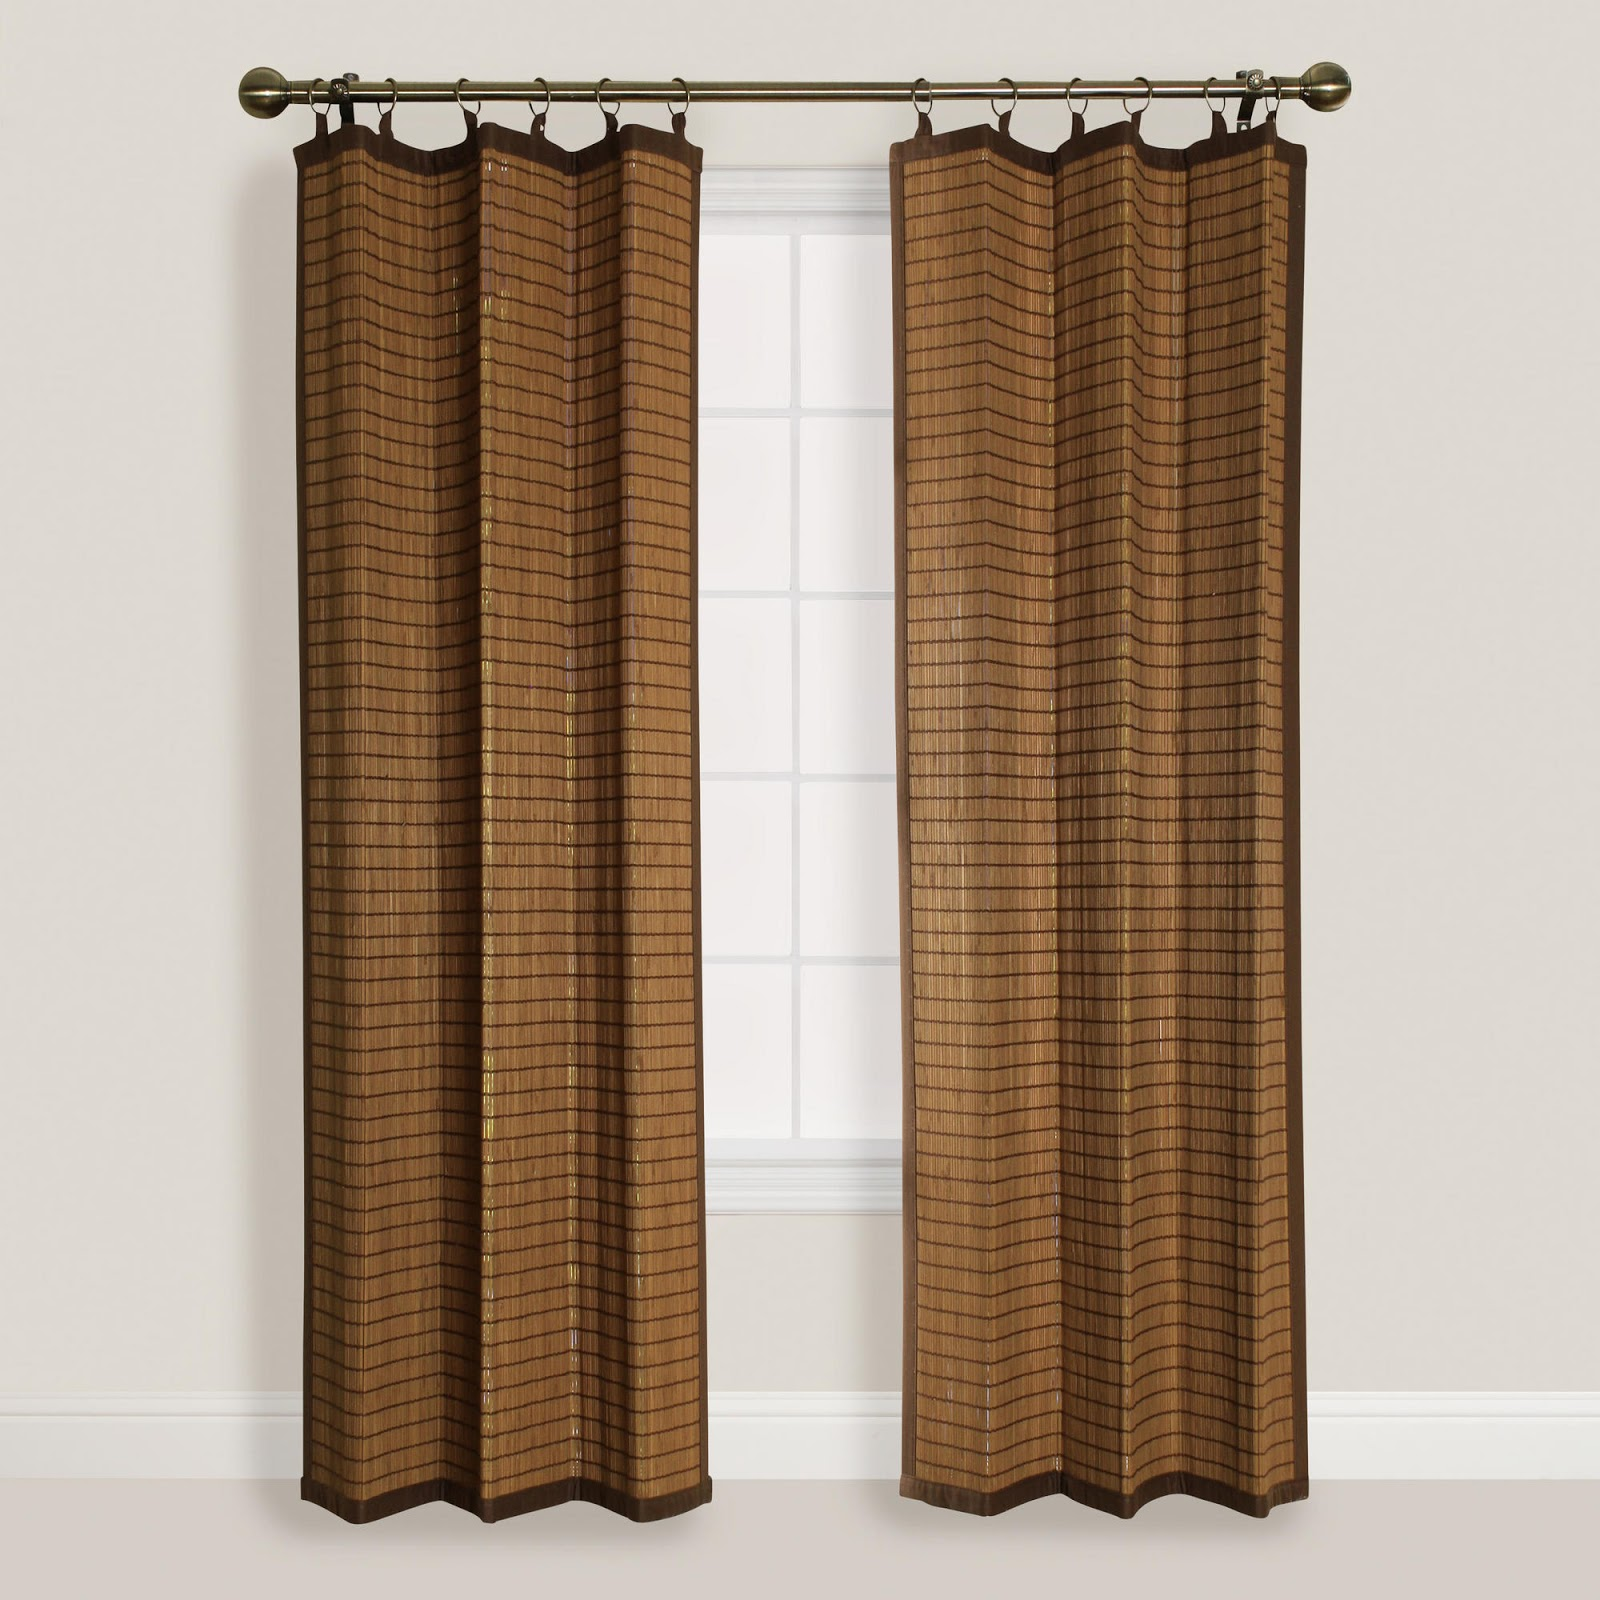 Ring Top Curtain Panels